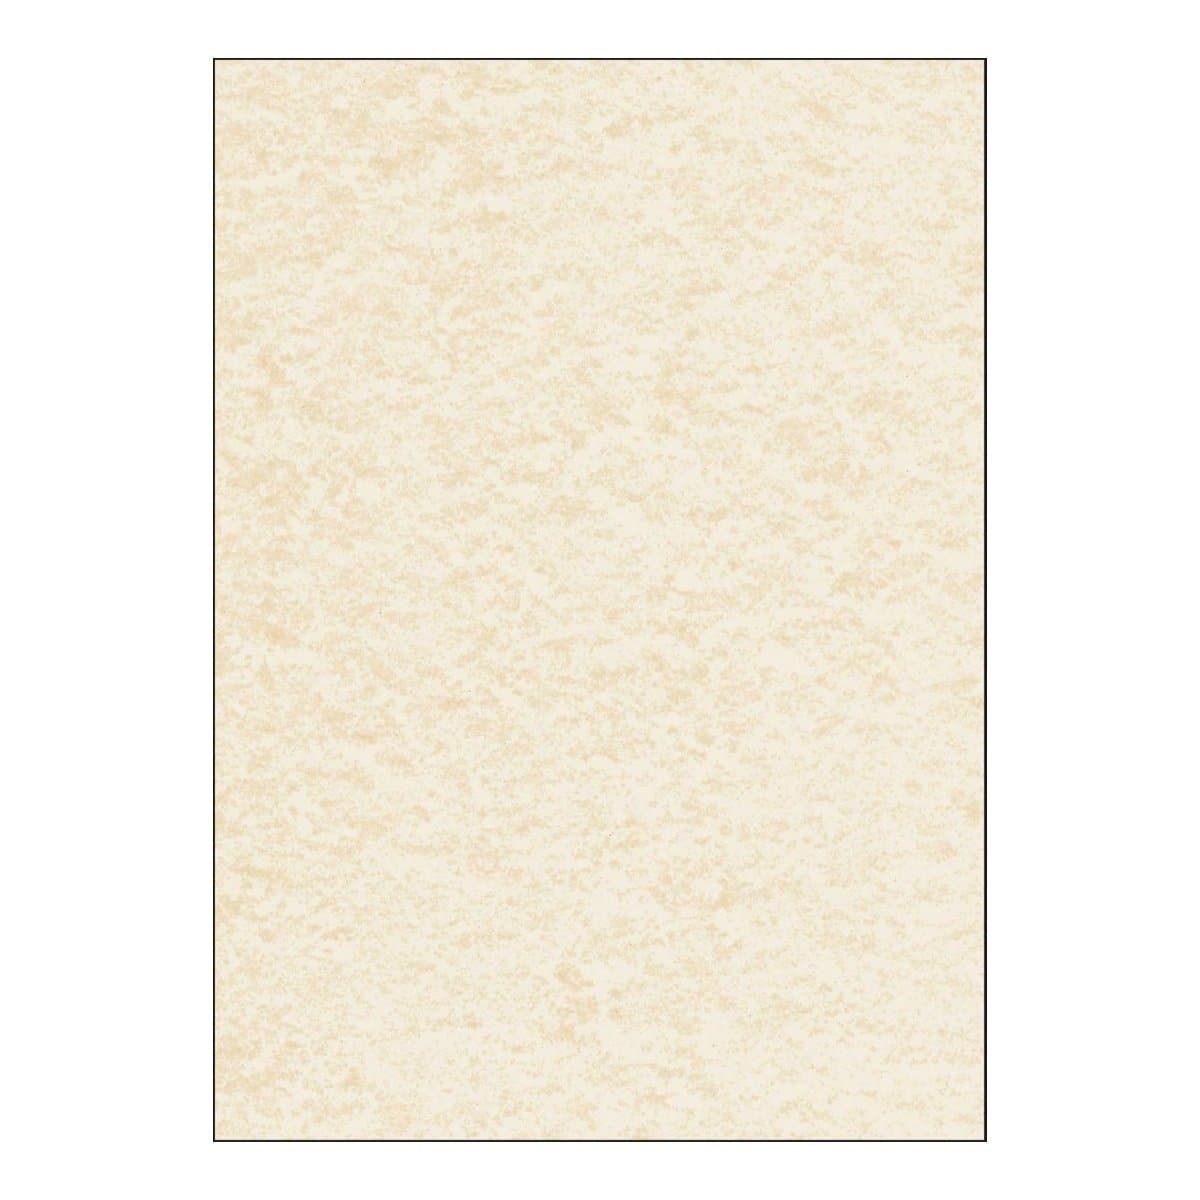 Sigel Textured Paper A4, fine cardboard, 200gsm, 50sheets/pack, Champagne